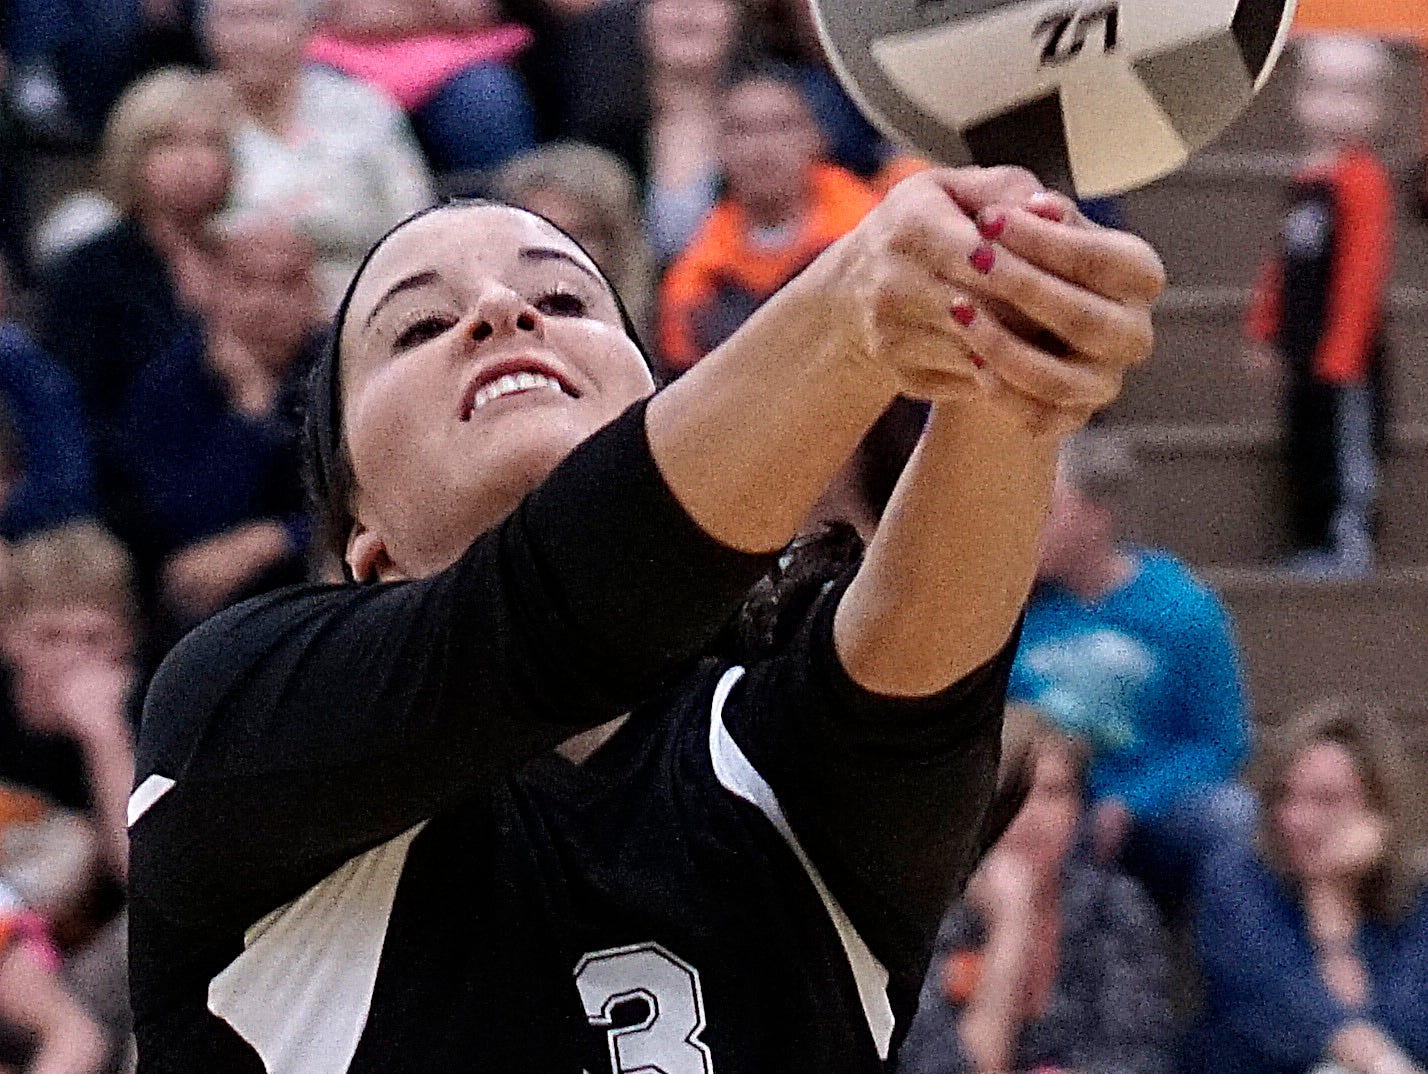 Lucas' Makayla Strassell tries to save a errant bump during their game Tuesday against Mansfield Christian.